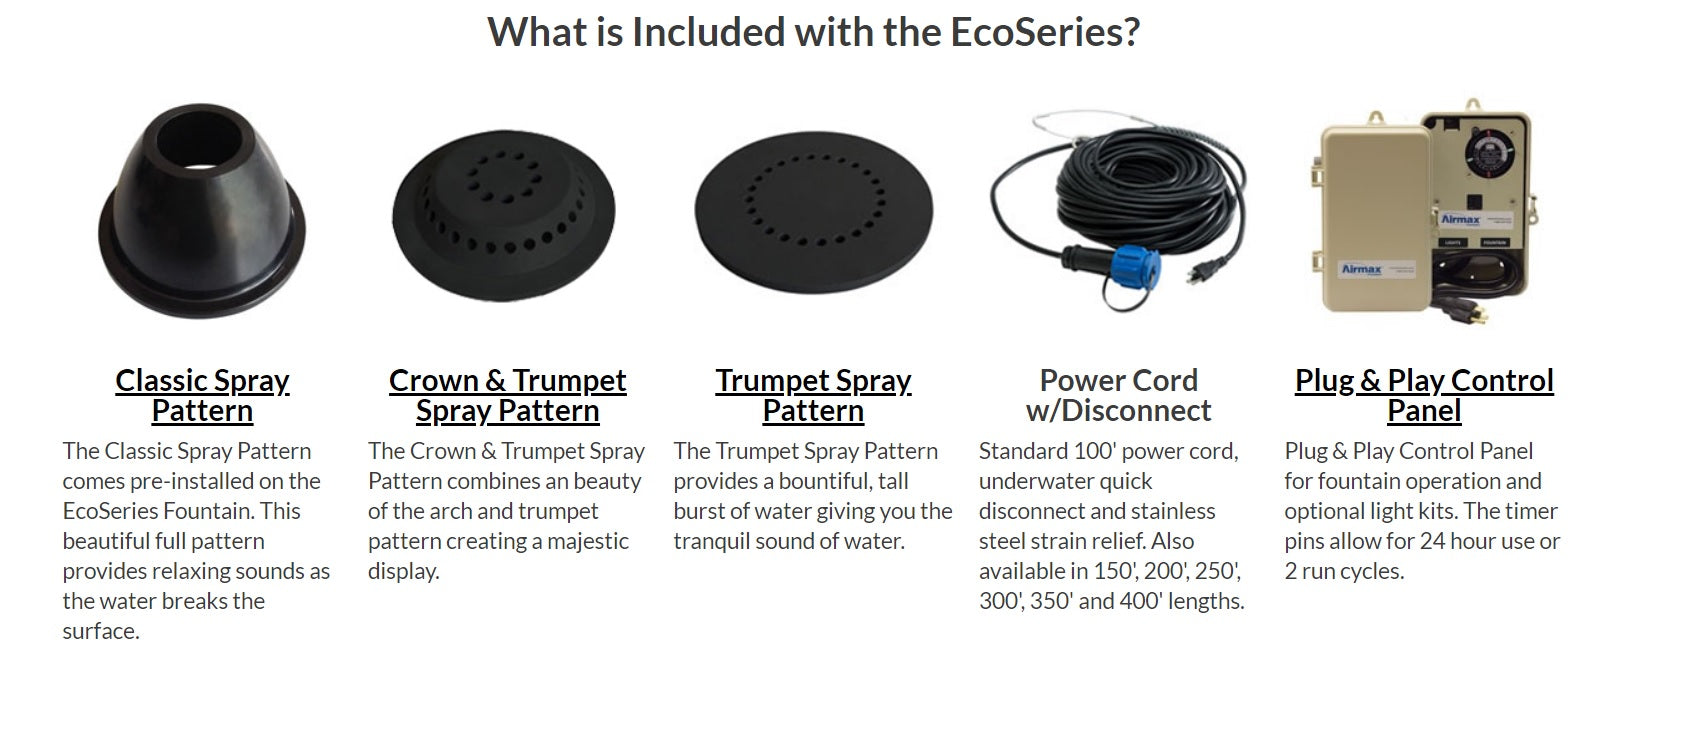 EcoSeries Included Items